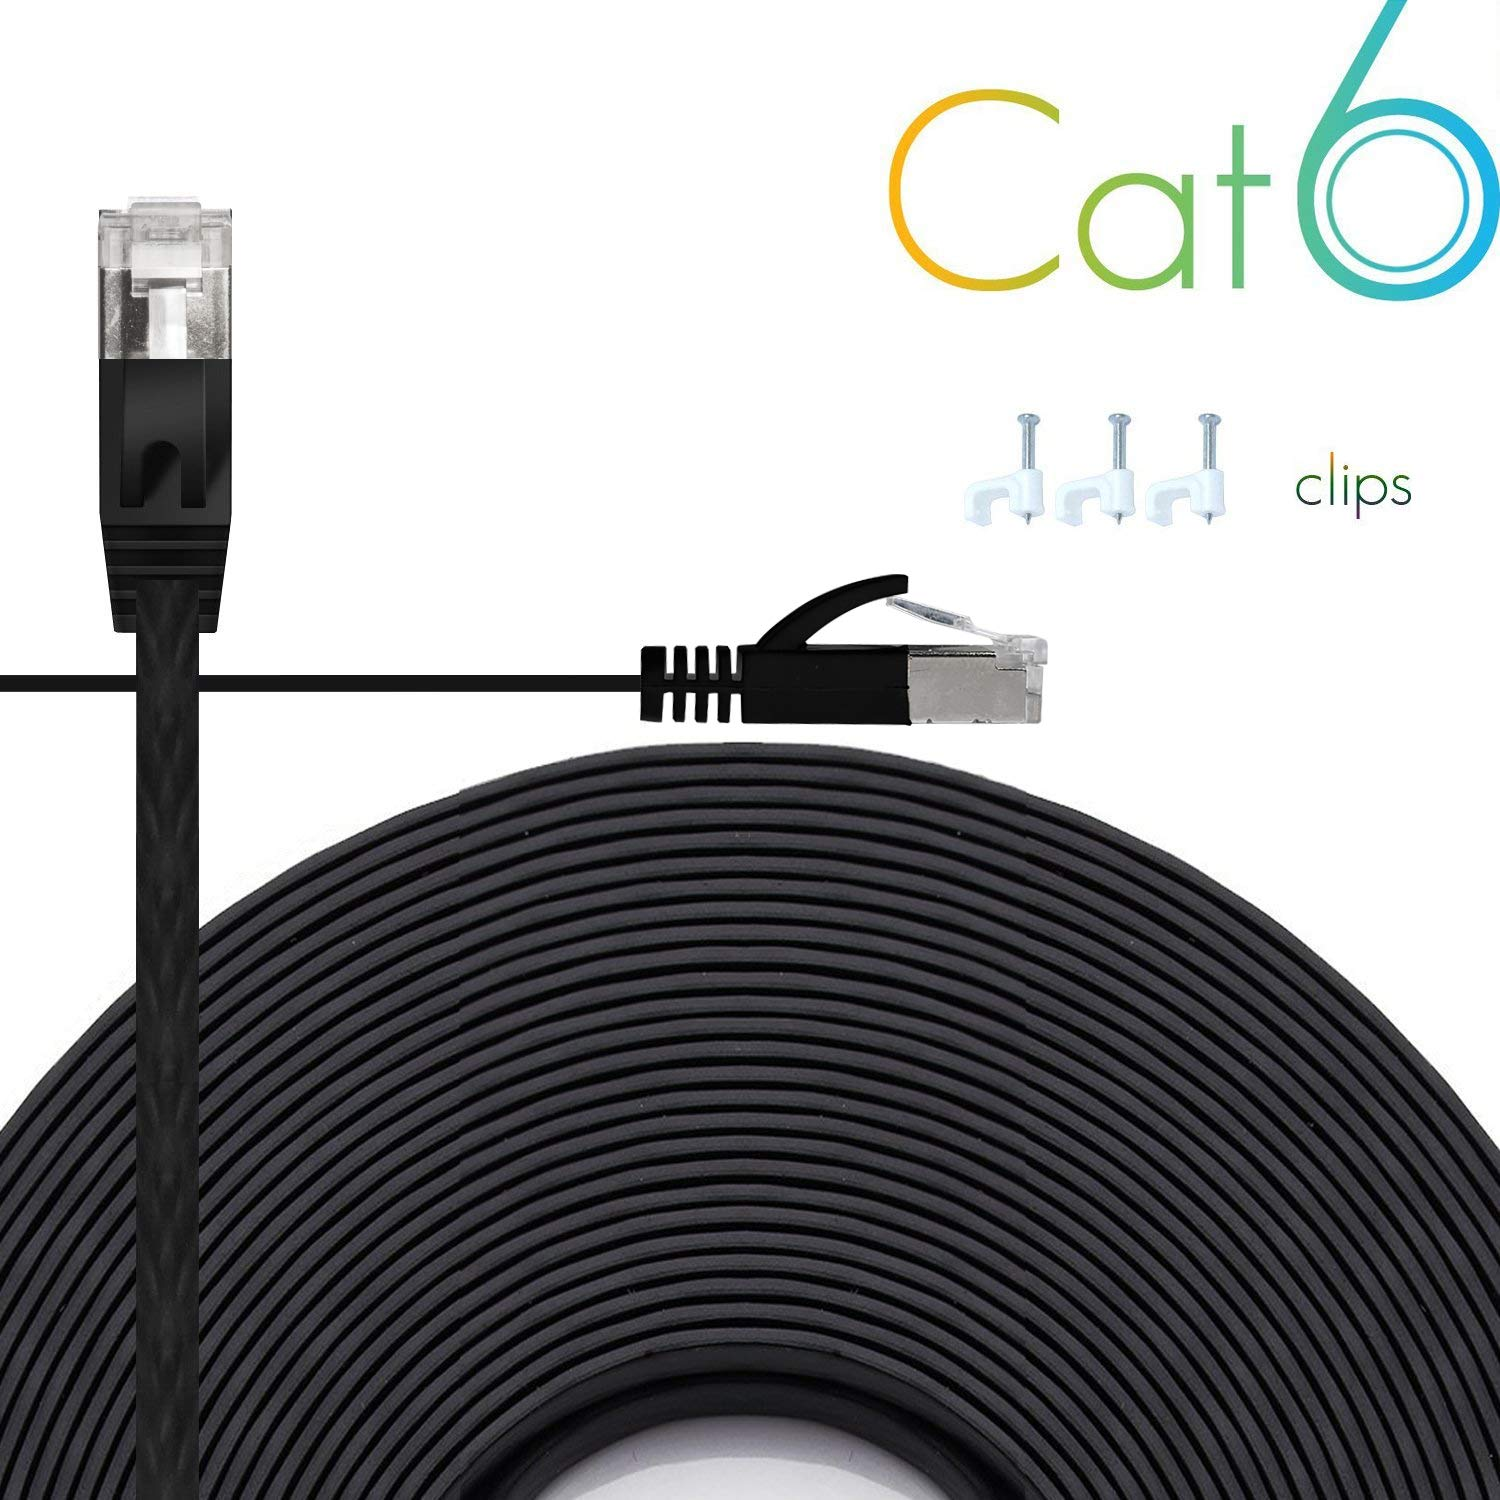 Ethernet Cable Cat6 Plus 50ft - Black Flat High Speed Internet Network Cable with Cable Clips - Computer Cable with Snagless Rj45 Connectors - 50 Feet Black